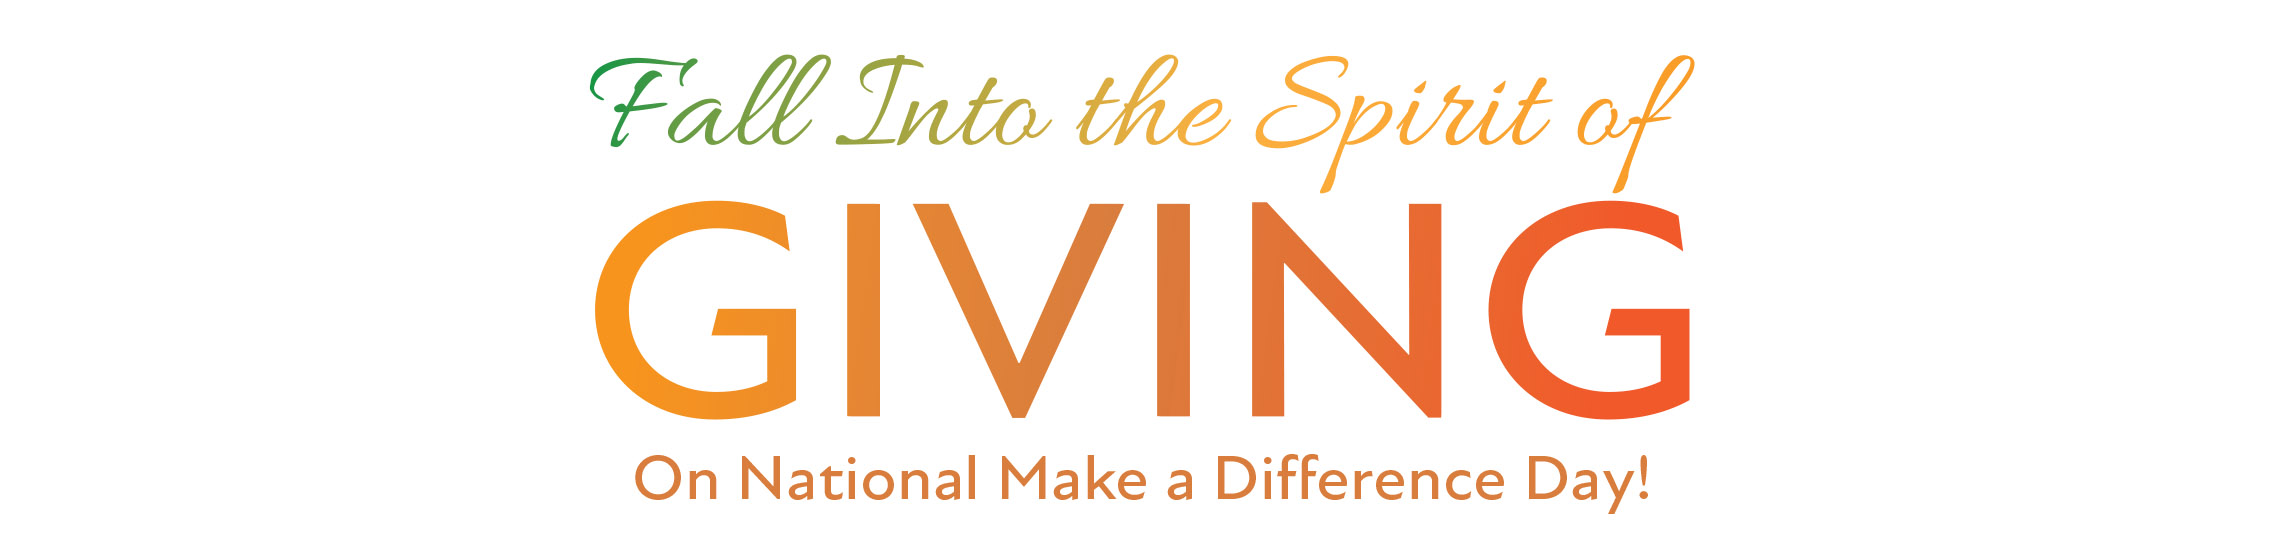 Fall into the spirit of GIVING